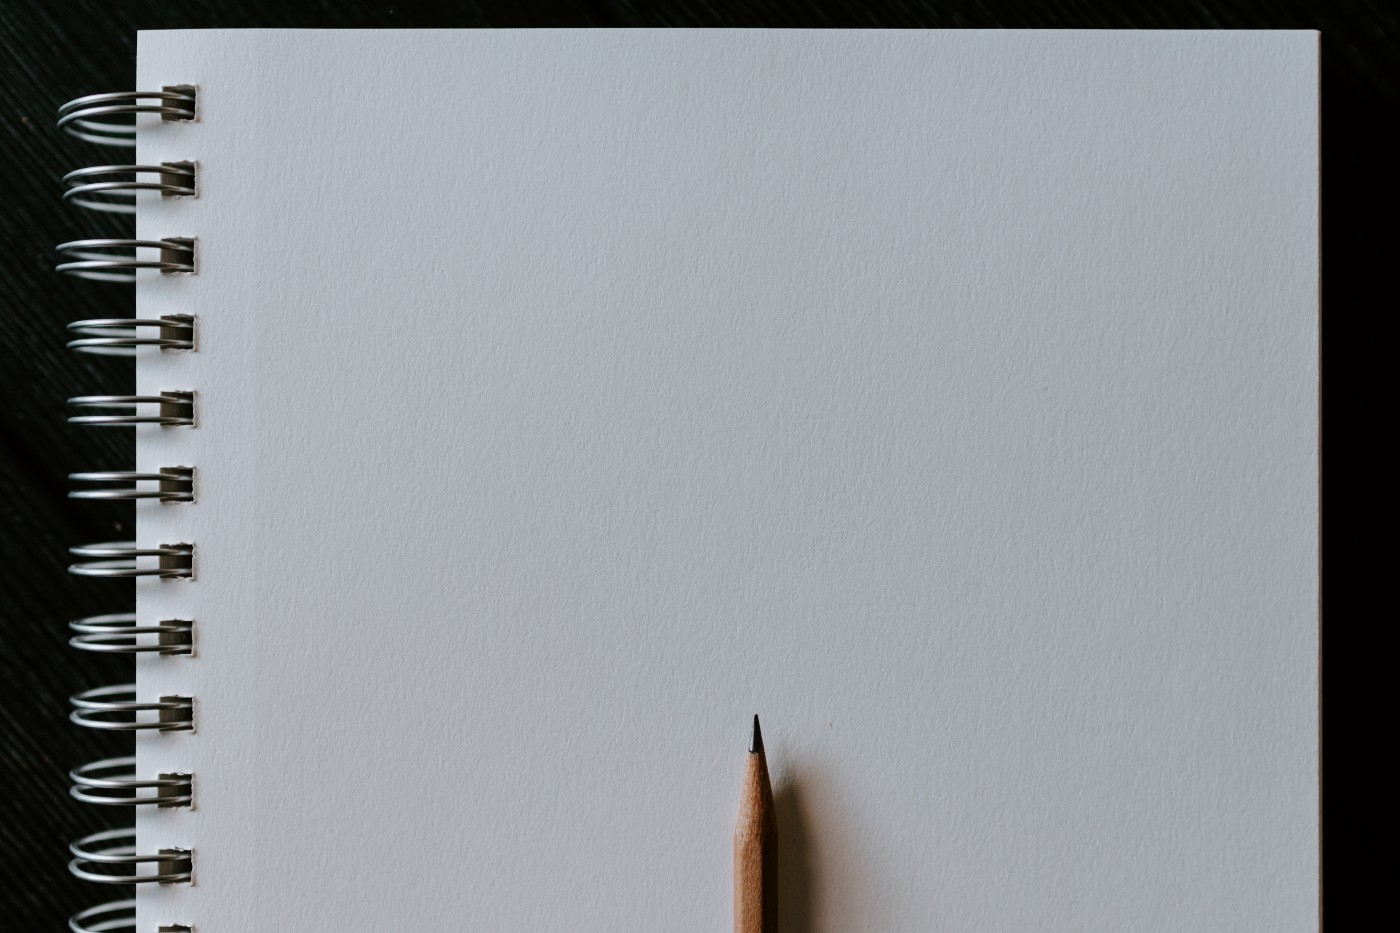 A spiral-bound notebook of white paper open to a blank page, with a sharpened wooden pencil laying atop it.